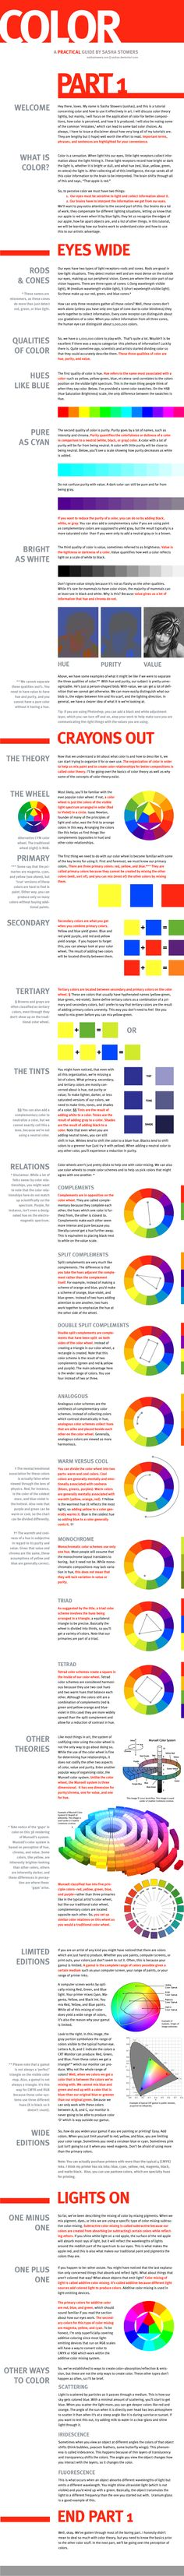 The Color Tutorial - Part 1 by sashas on DeviantArt